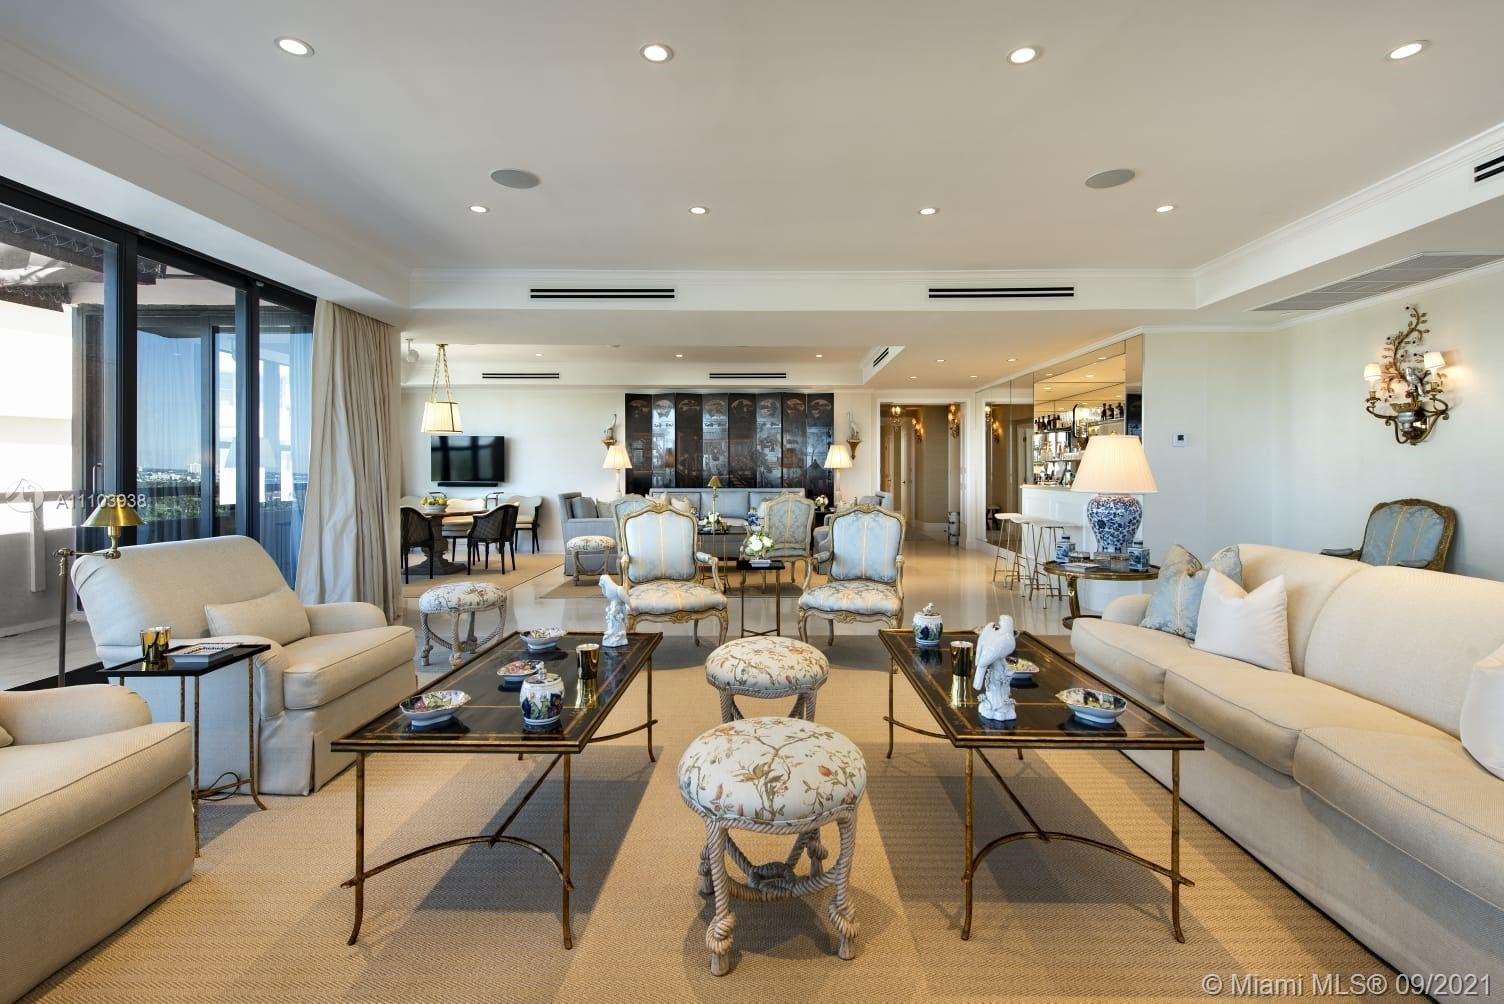 """This exquisite two-story, five bedroom penthouse apartment with almost 7,300 square feet of living space offers exemplary panoramic views of the ocean and city. Completly renovated with state of the art appliances, the unit include all furniture and art, This unique apartment was decorated by a renown interior designer.  The unit offers private gym, private elevator, sauna, massage room and several service kitchens along a massive terrace facing the Ocean. The price includes next door uint 2/2 PH 2. This residences lie on """"Millionare's Row"""" as part of the Alexander Hotel Condominium Residence offers unsurpassed security and privacy, valet parking, two heated swimming pools, hot tub, fitness center with sauna and steam, two restaurants and Shabbat elevator. This unit is one of a kind"""